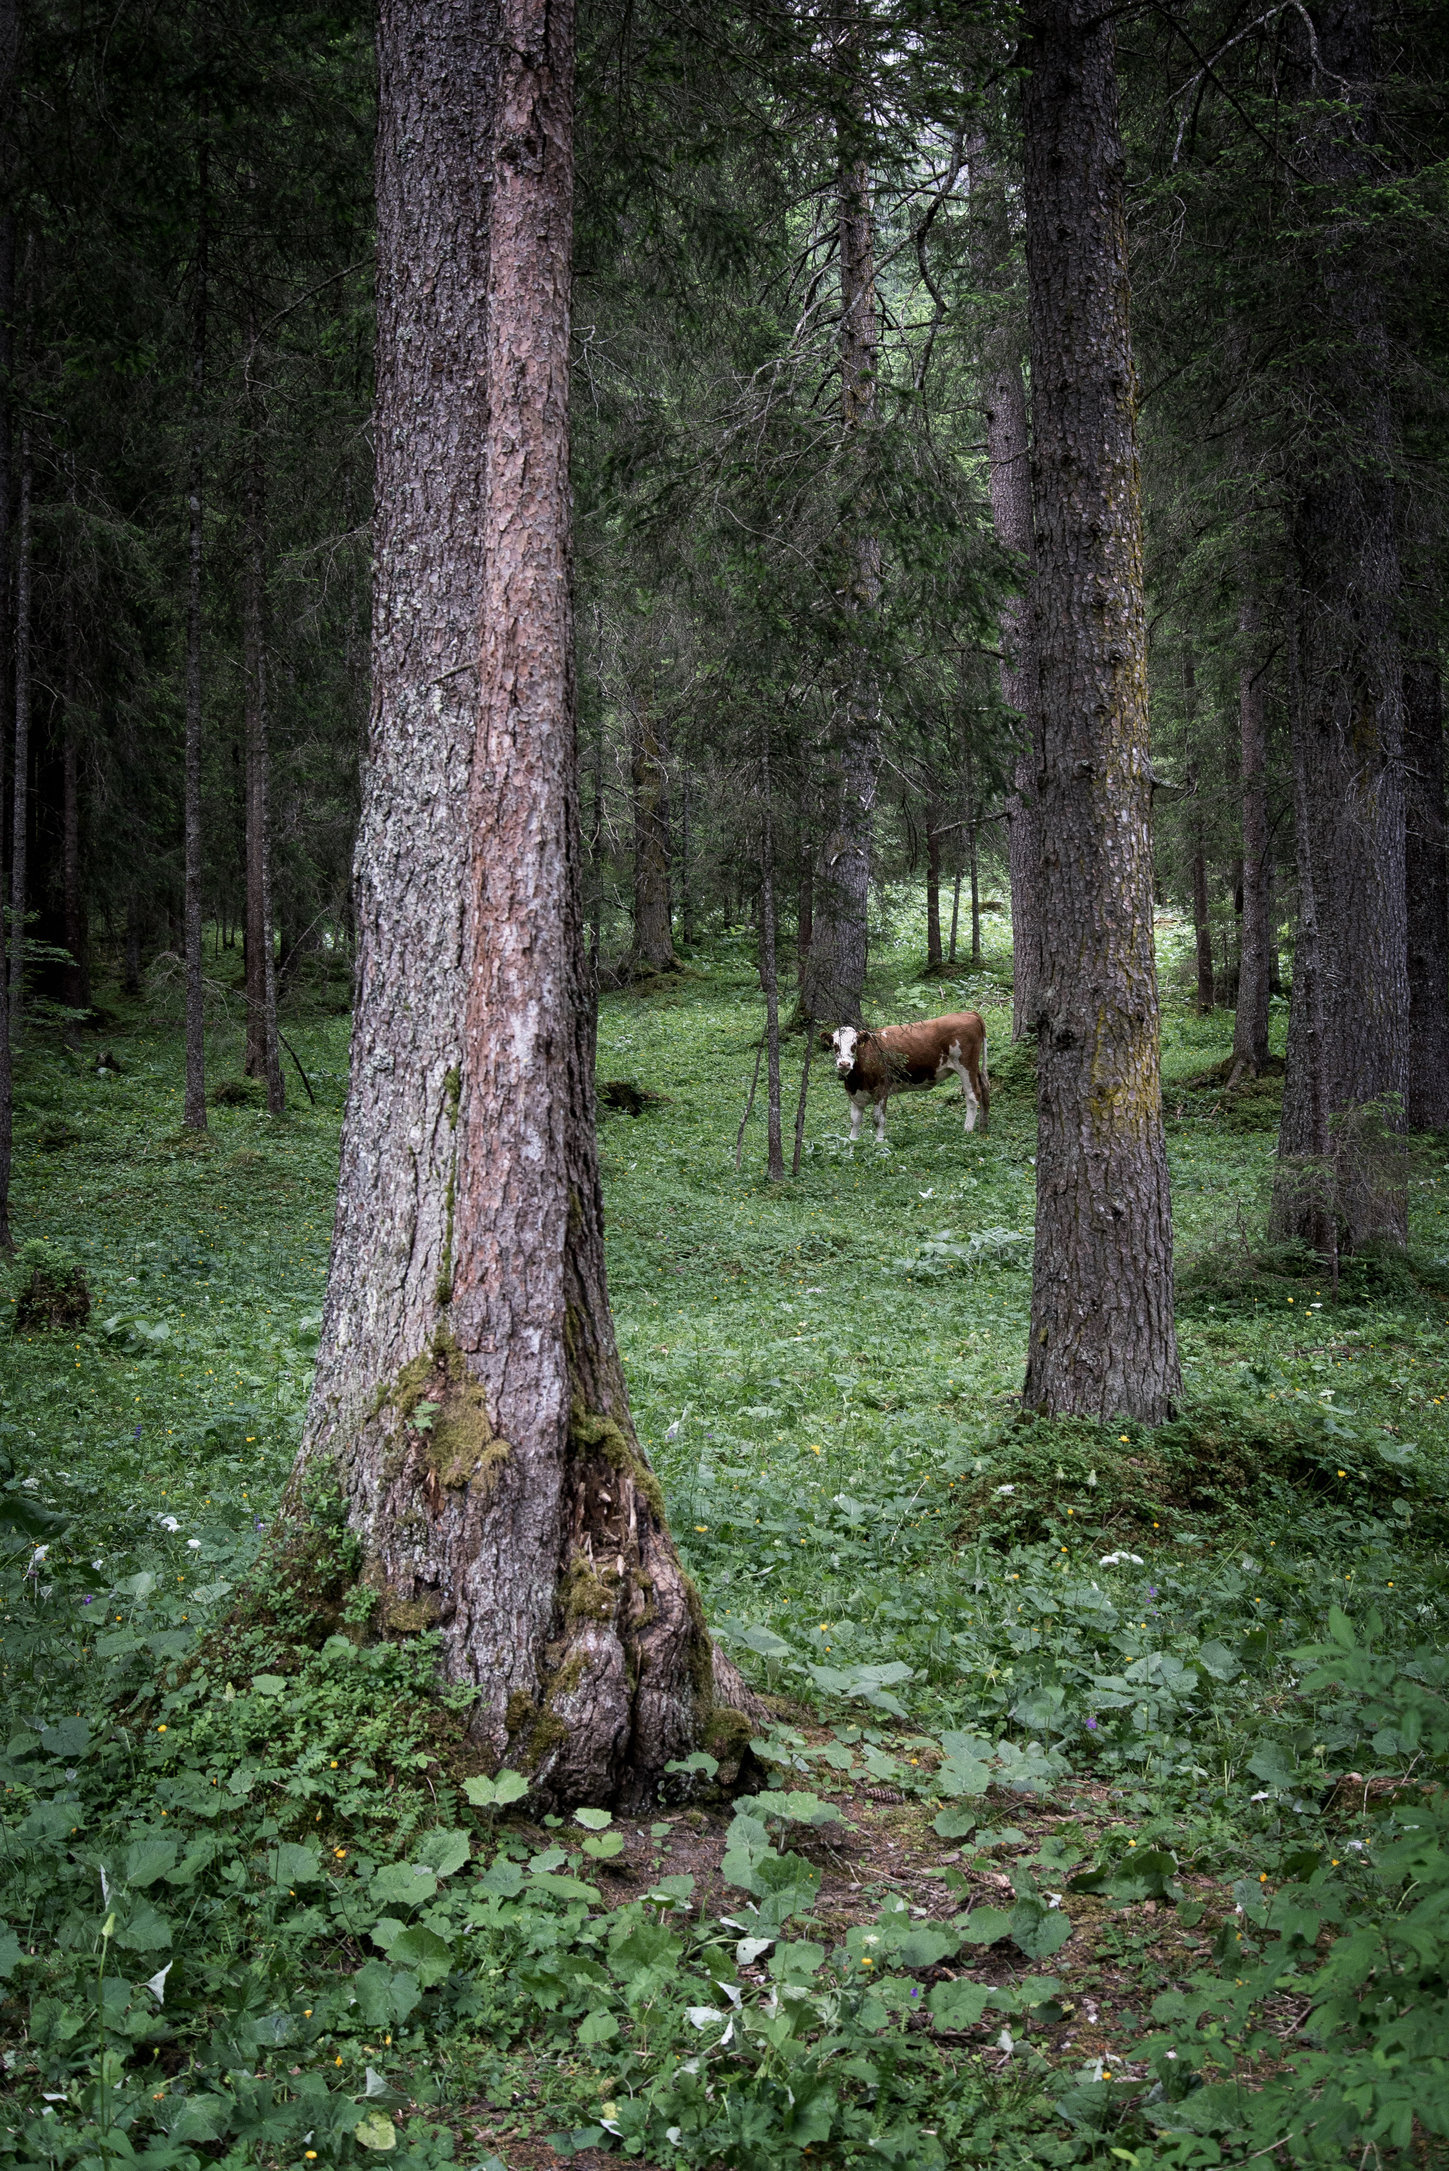 Cow in the Woods